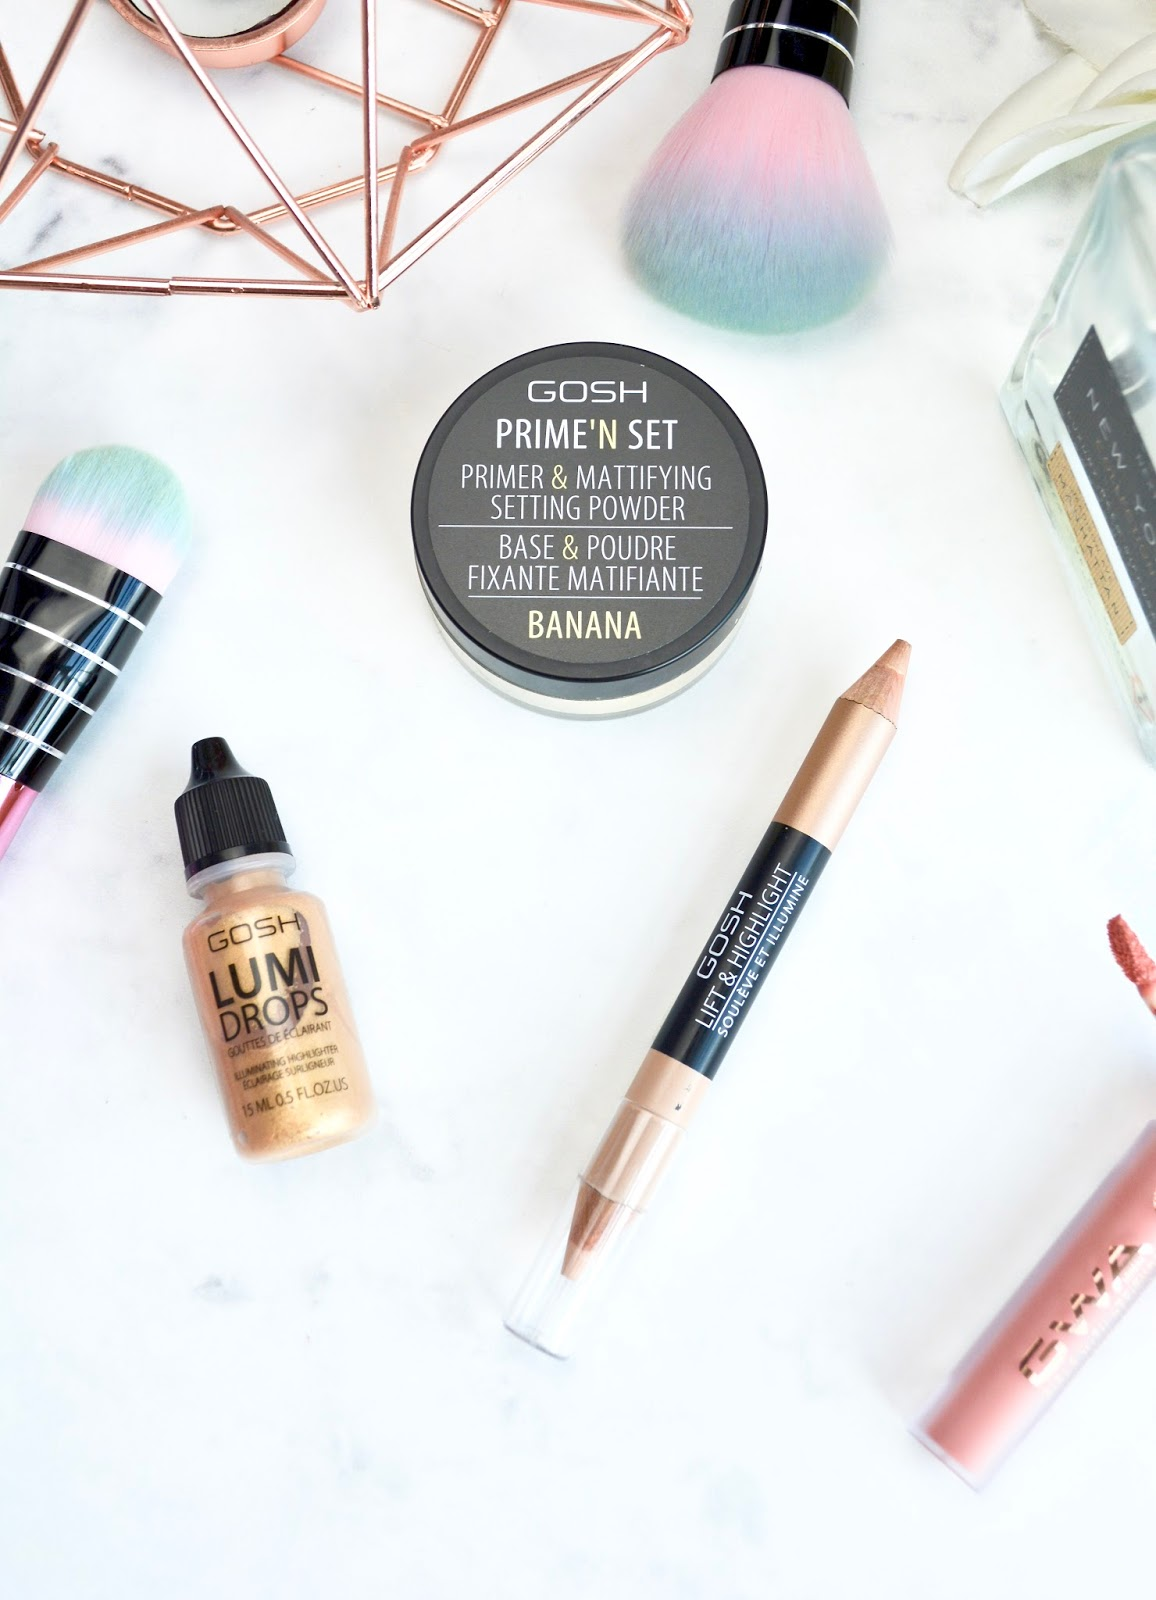 The Best Brightening Makeup From GOSH Copenhagen